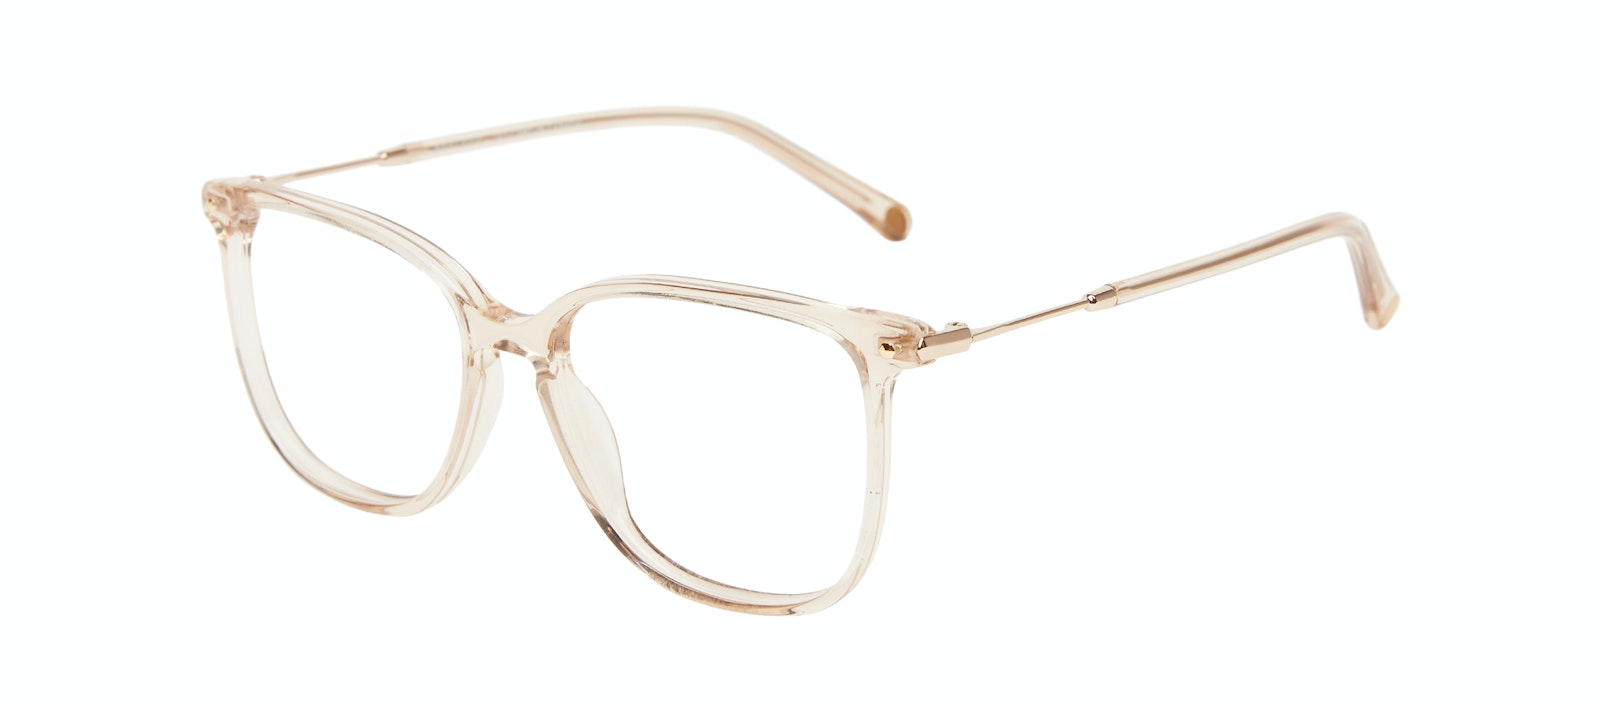 Affordable Fashion Glasses Square Eyeglasses Women Sonia Petite Blush Tilt